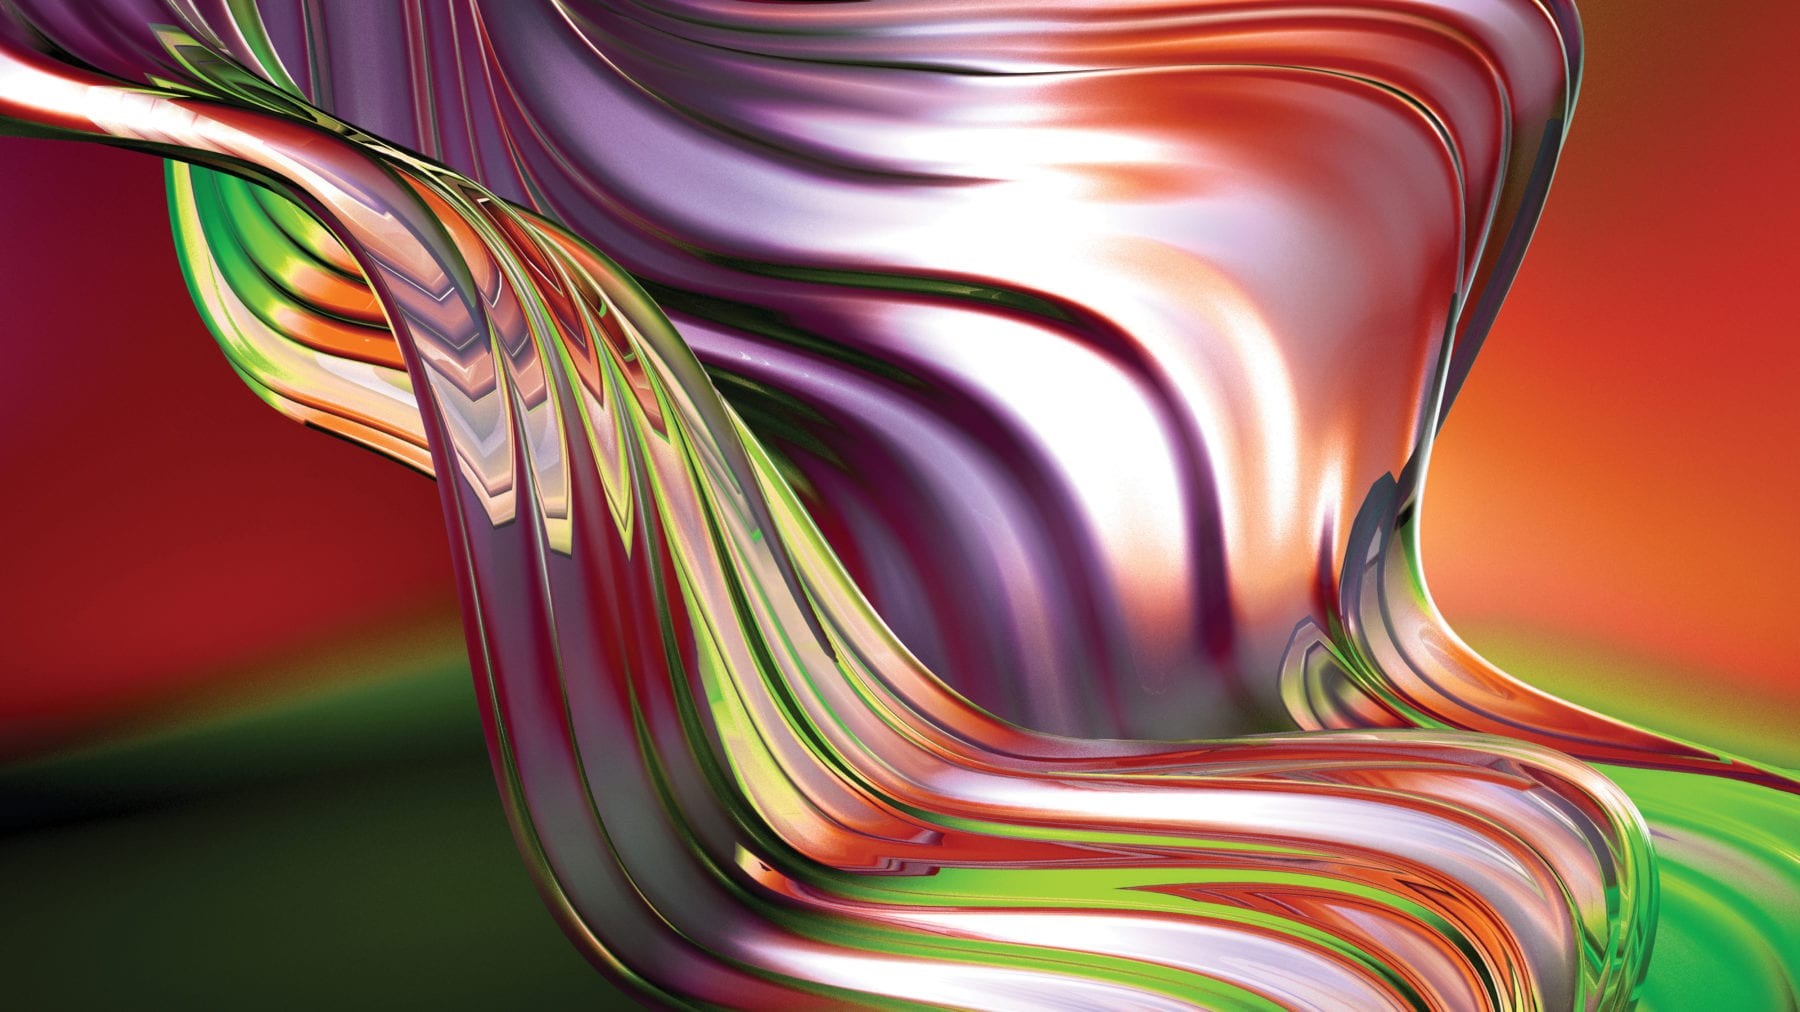 Abstract colorful background. 3d illustration, 3d rendering.